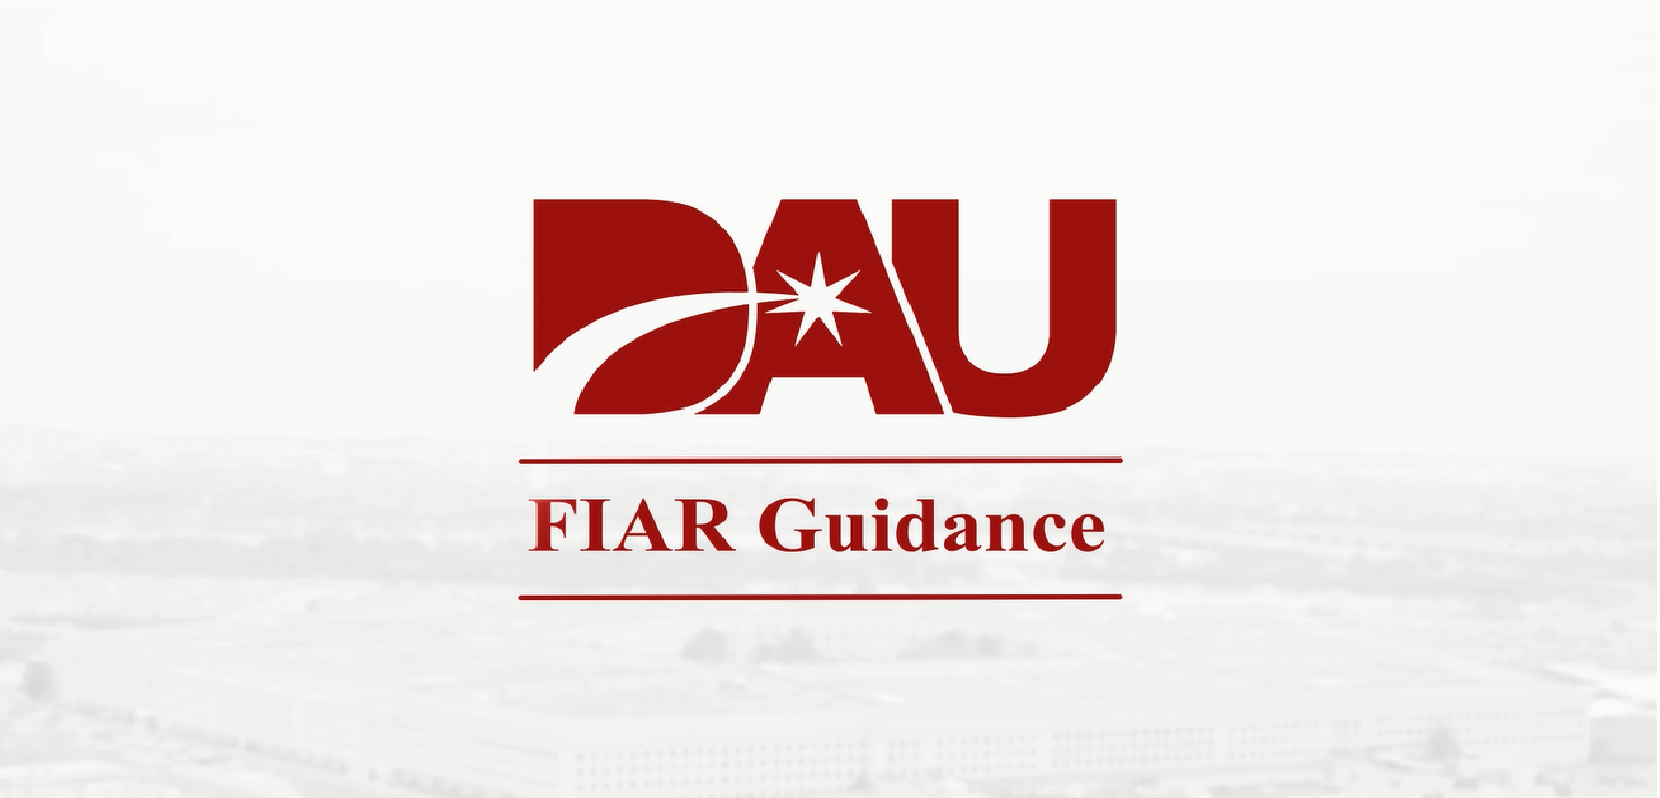 https://www.dau.mil/training/career-development/bce/PublishingImages/FIAR Guidance V4.png